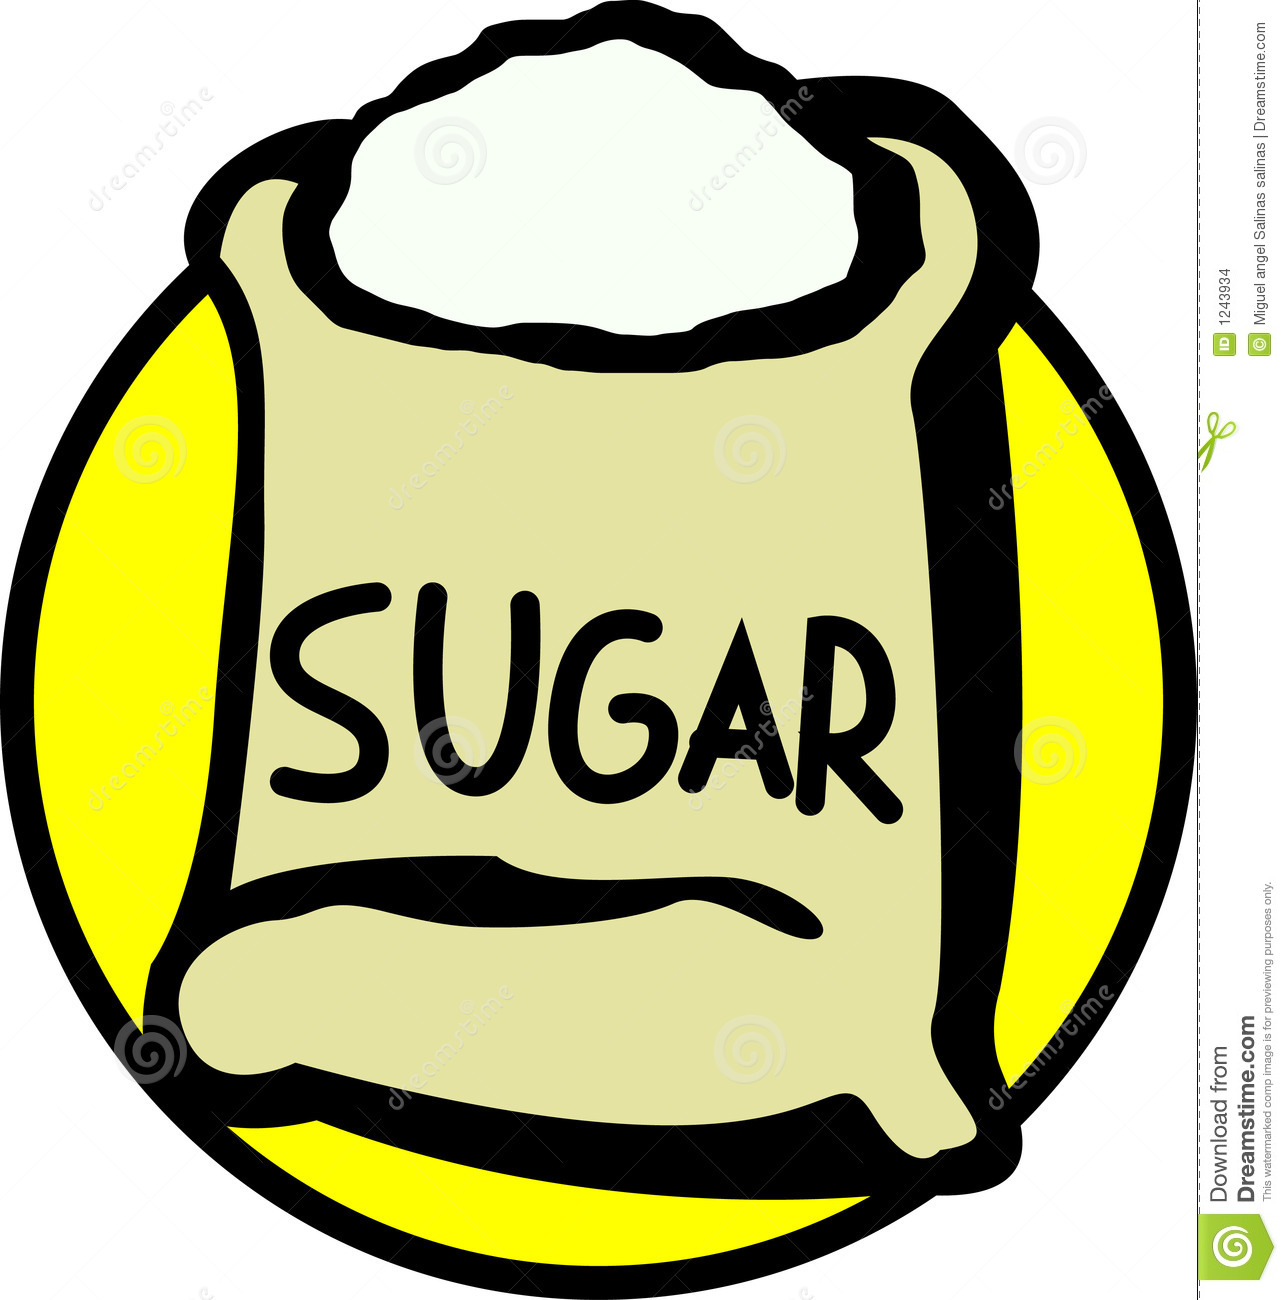 Azucar clipart Images Clipart sugar%20clipart Clipart Free